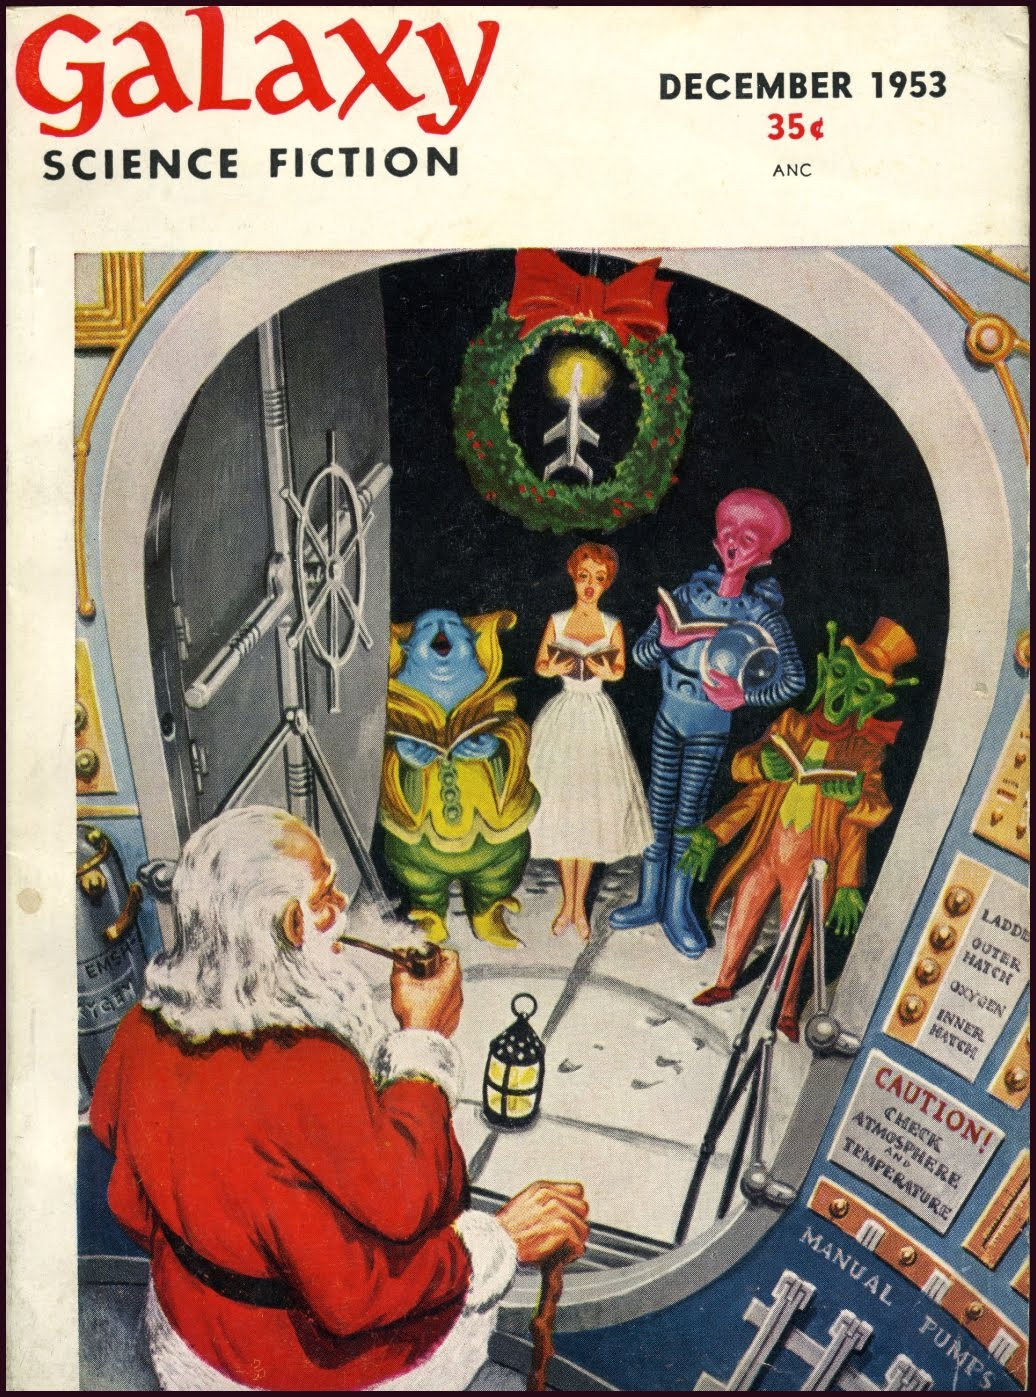 Figure 7: Galaxy Magazine December 1953